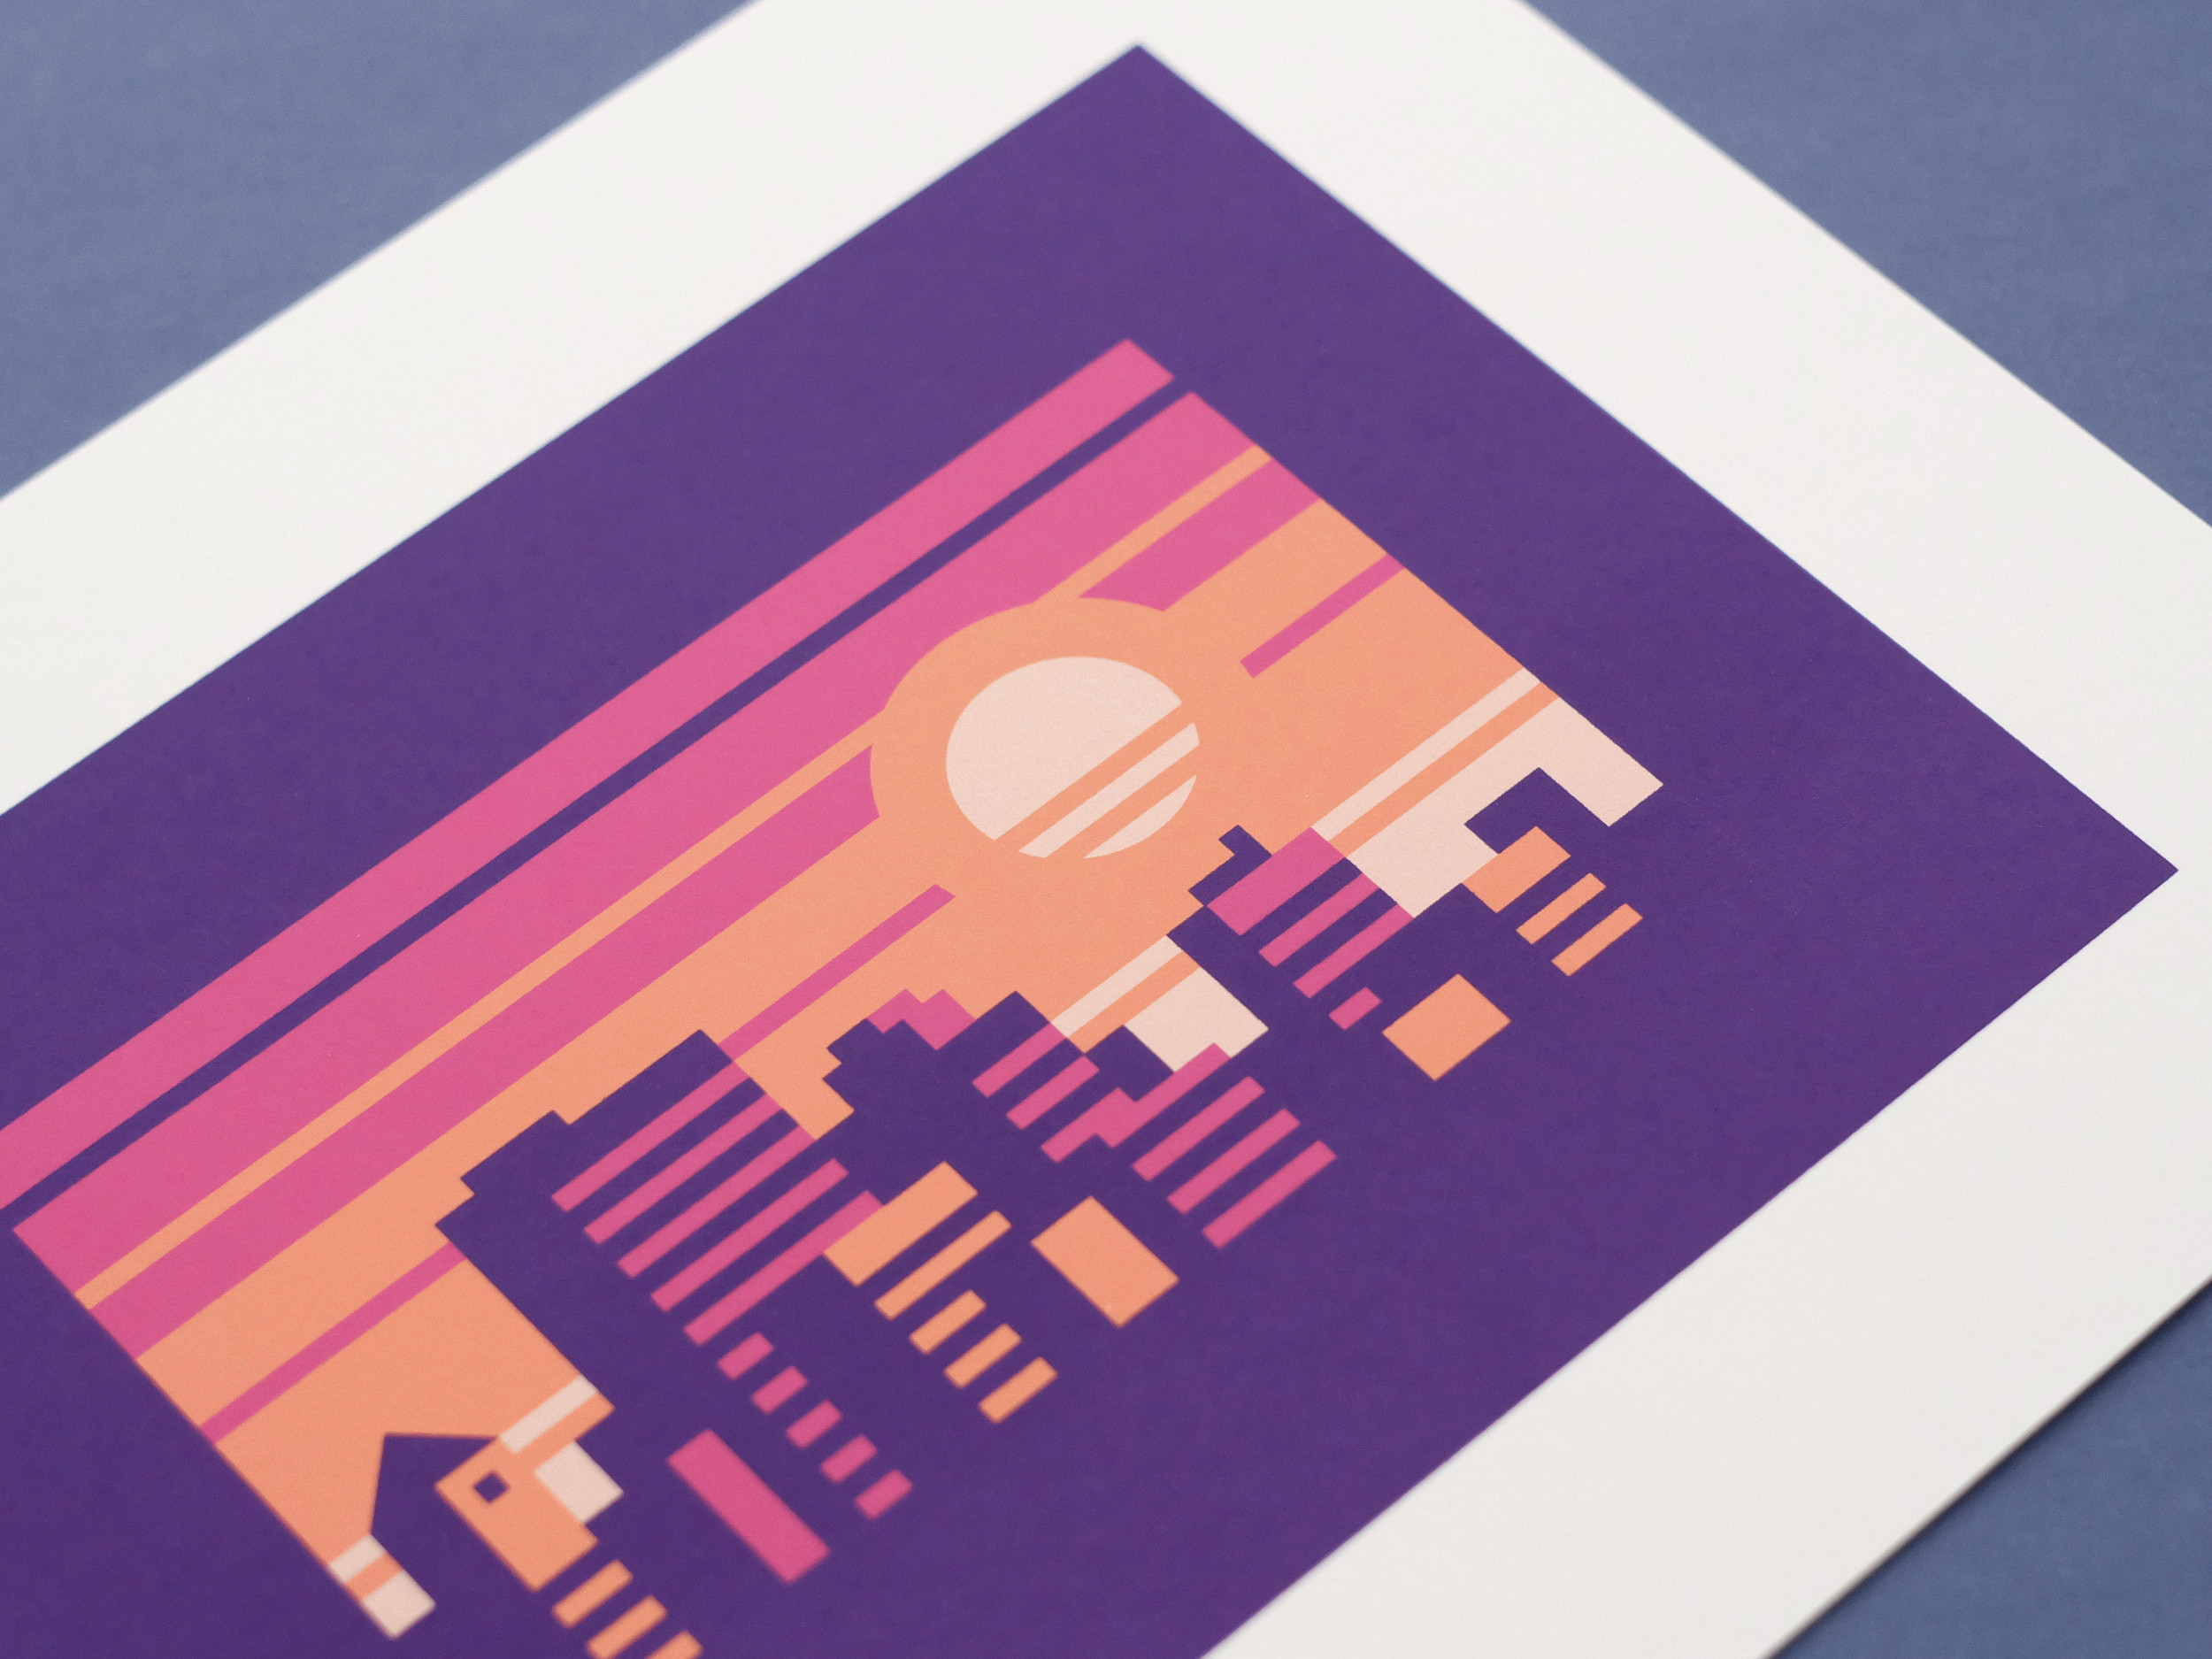 Ametrine - Abstract city prints by Canopy Design and Illustration